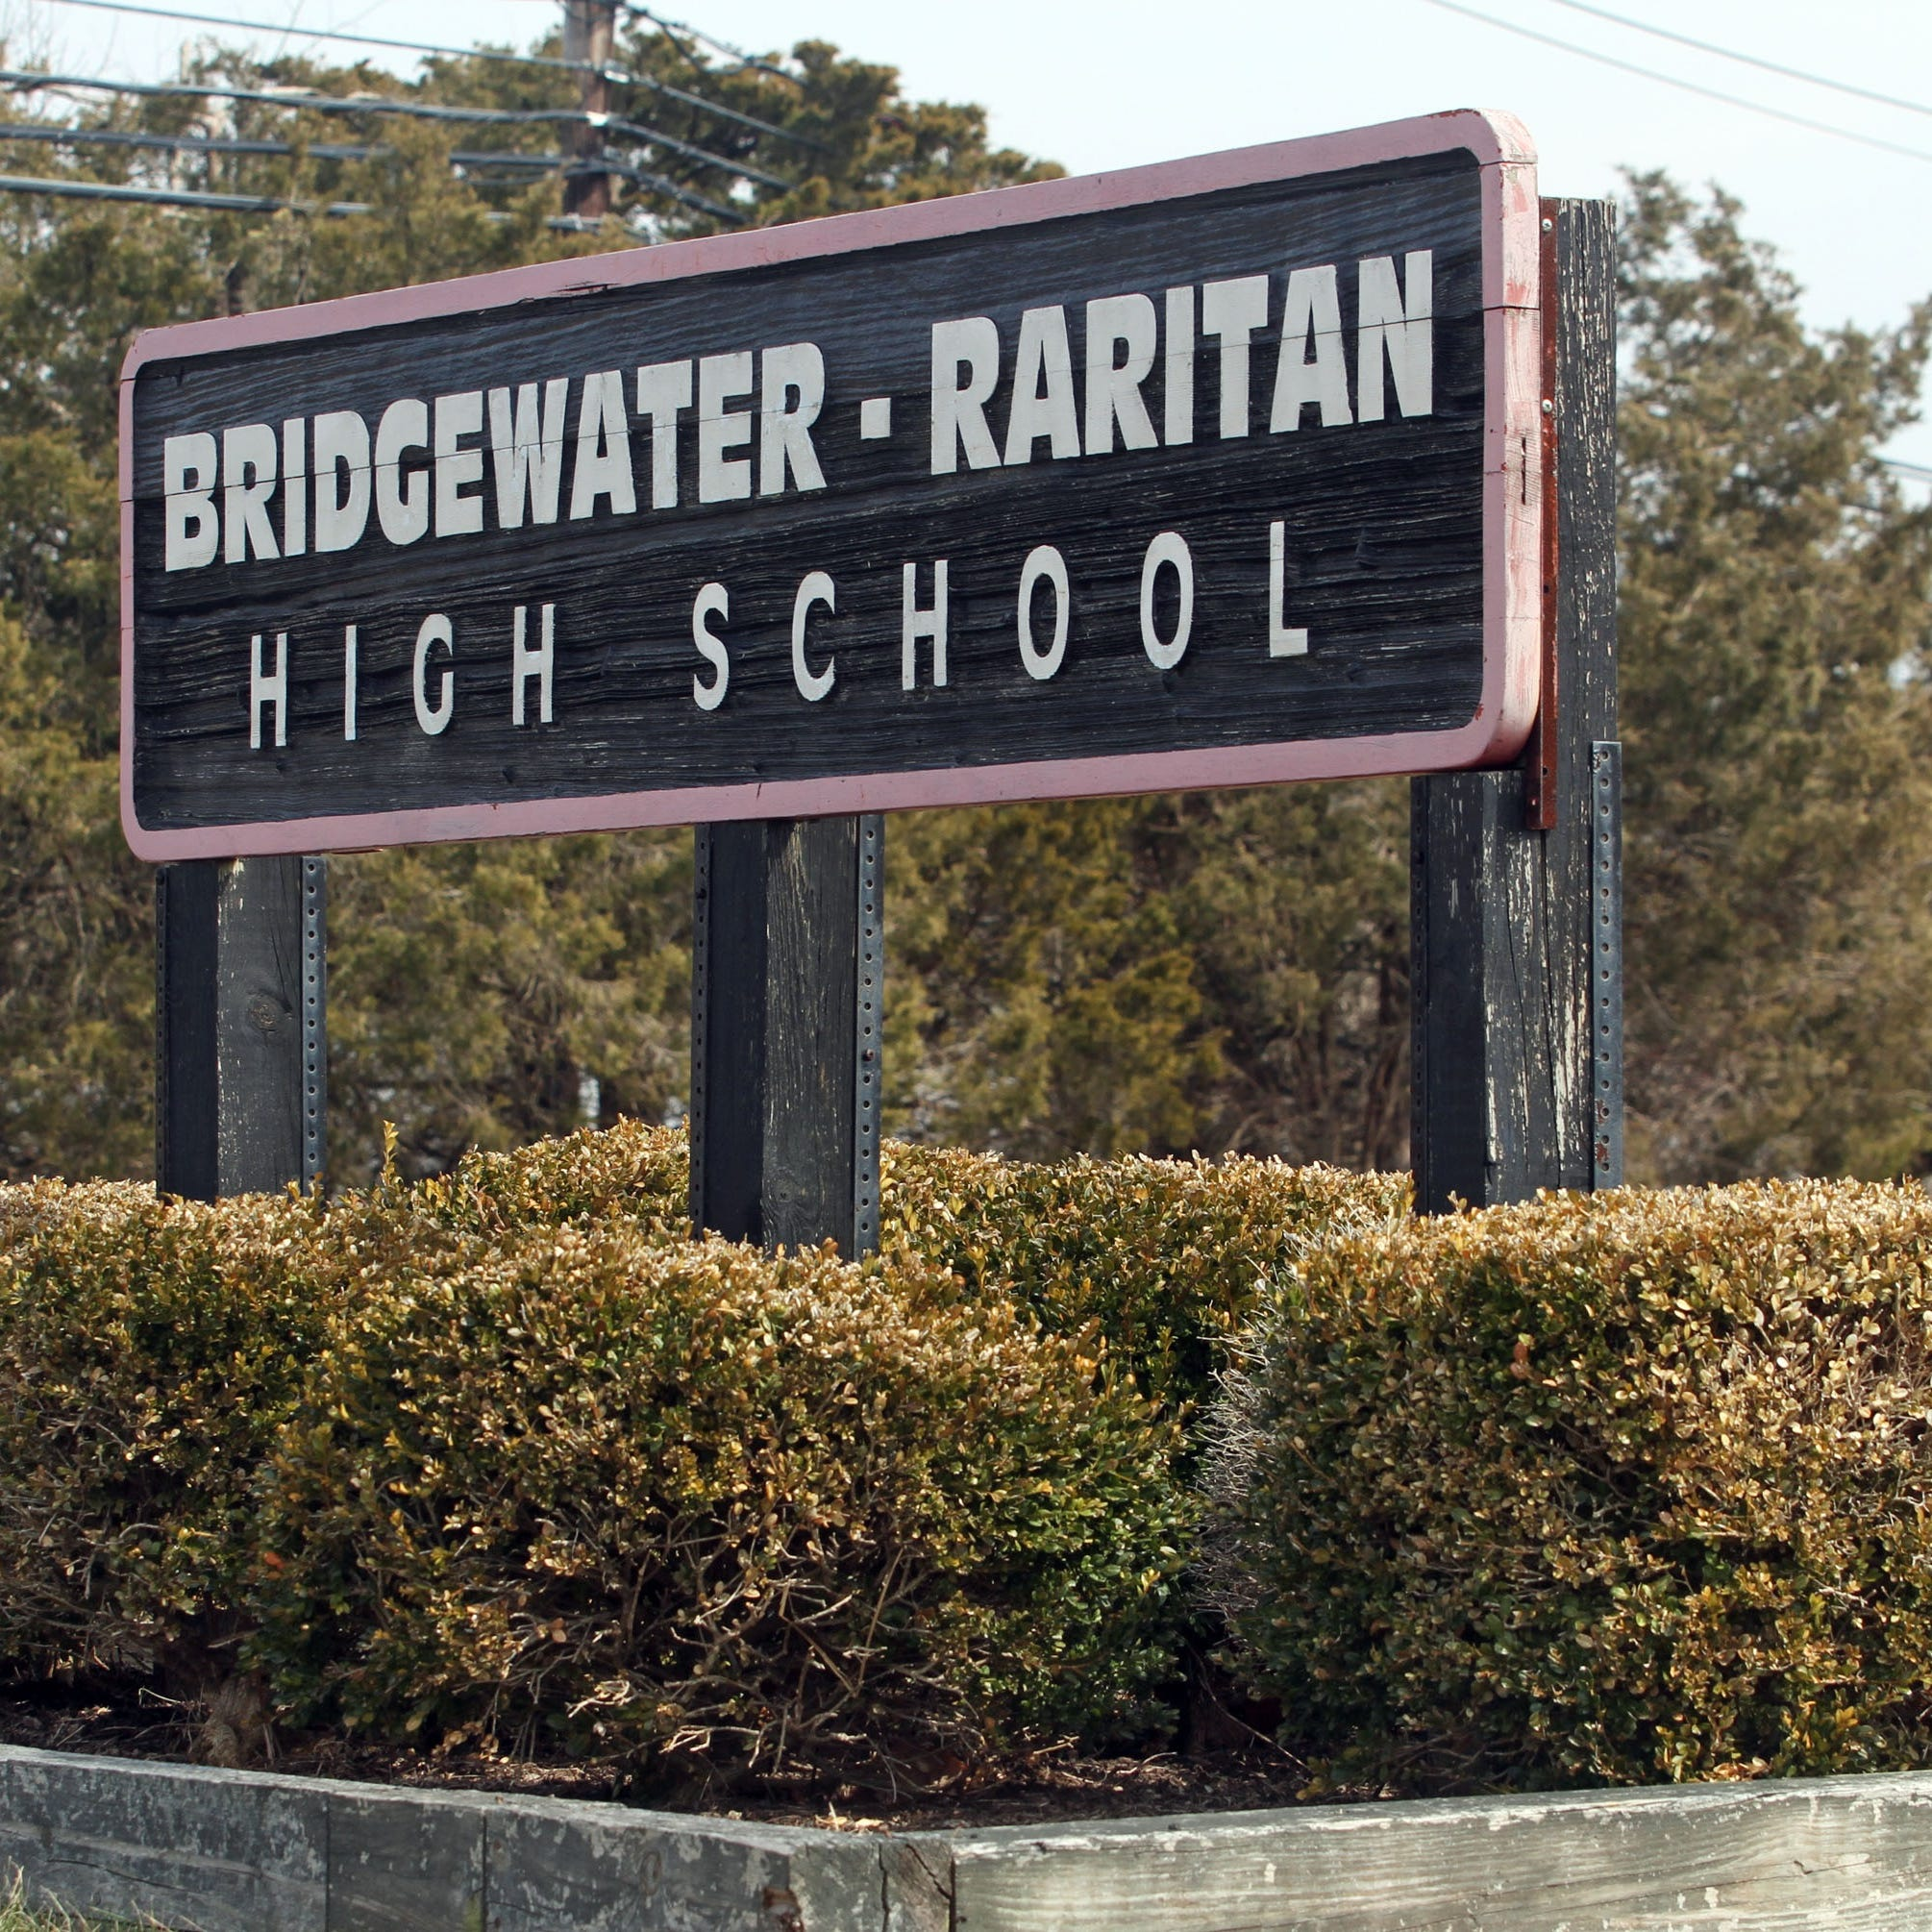 Bridgewater-Raritan High School: Odor in cafeteria may have been caused by pepper spray